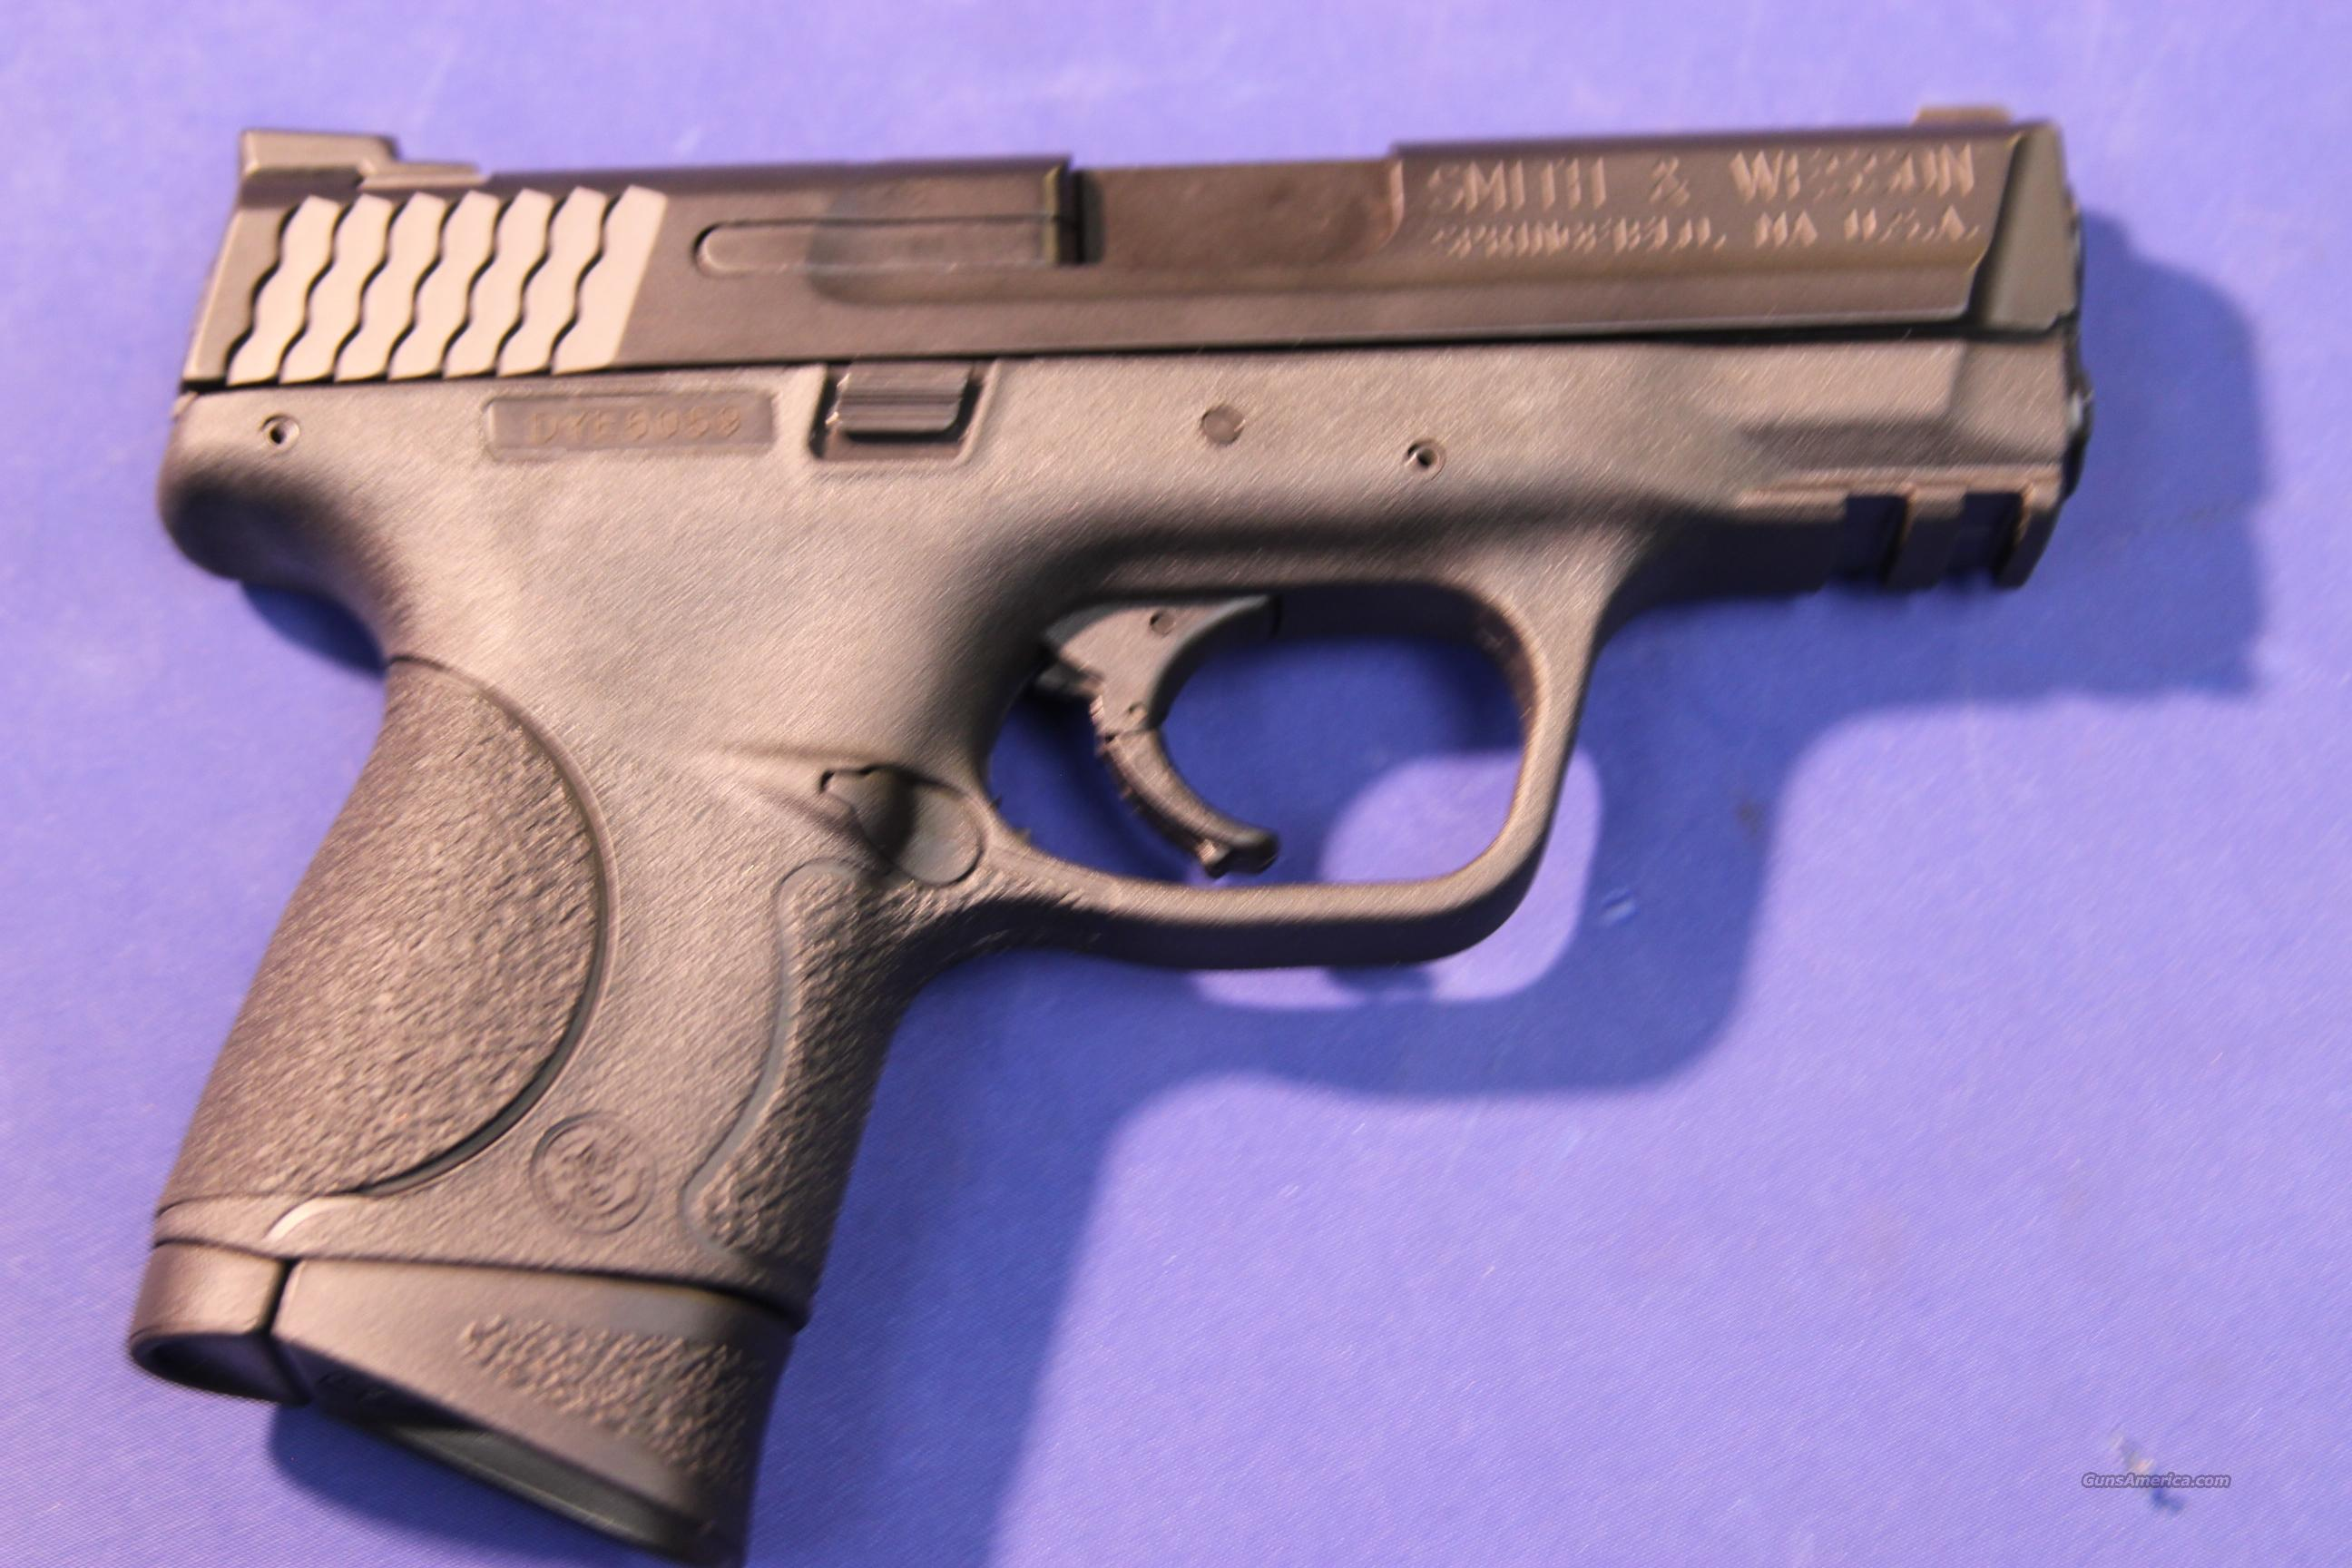 SMITH & WESSON M&P COMPACT 9MM – NEW!   Guns > Pistols > Smith & Wesson Pistols - Autos > Polymer Frame